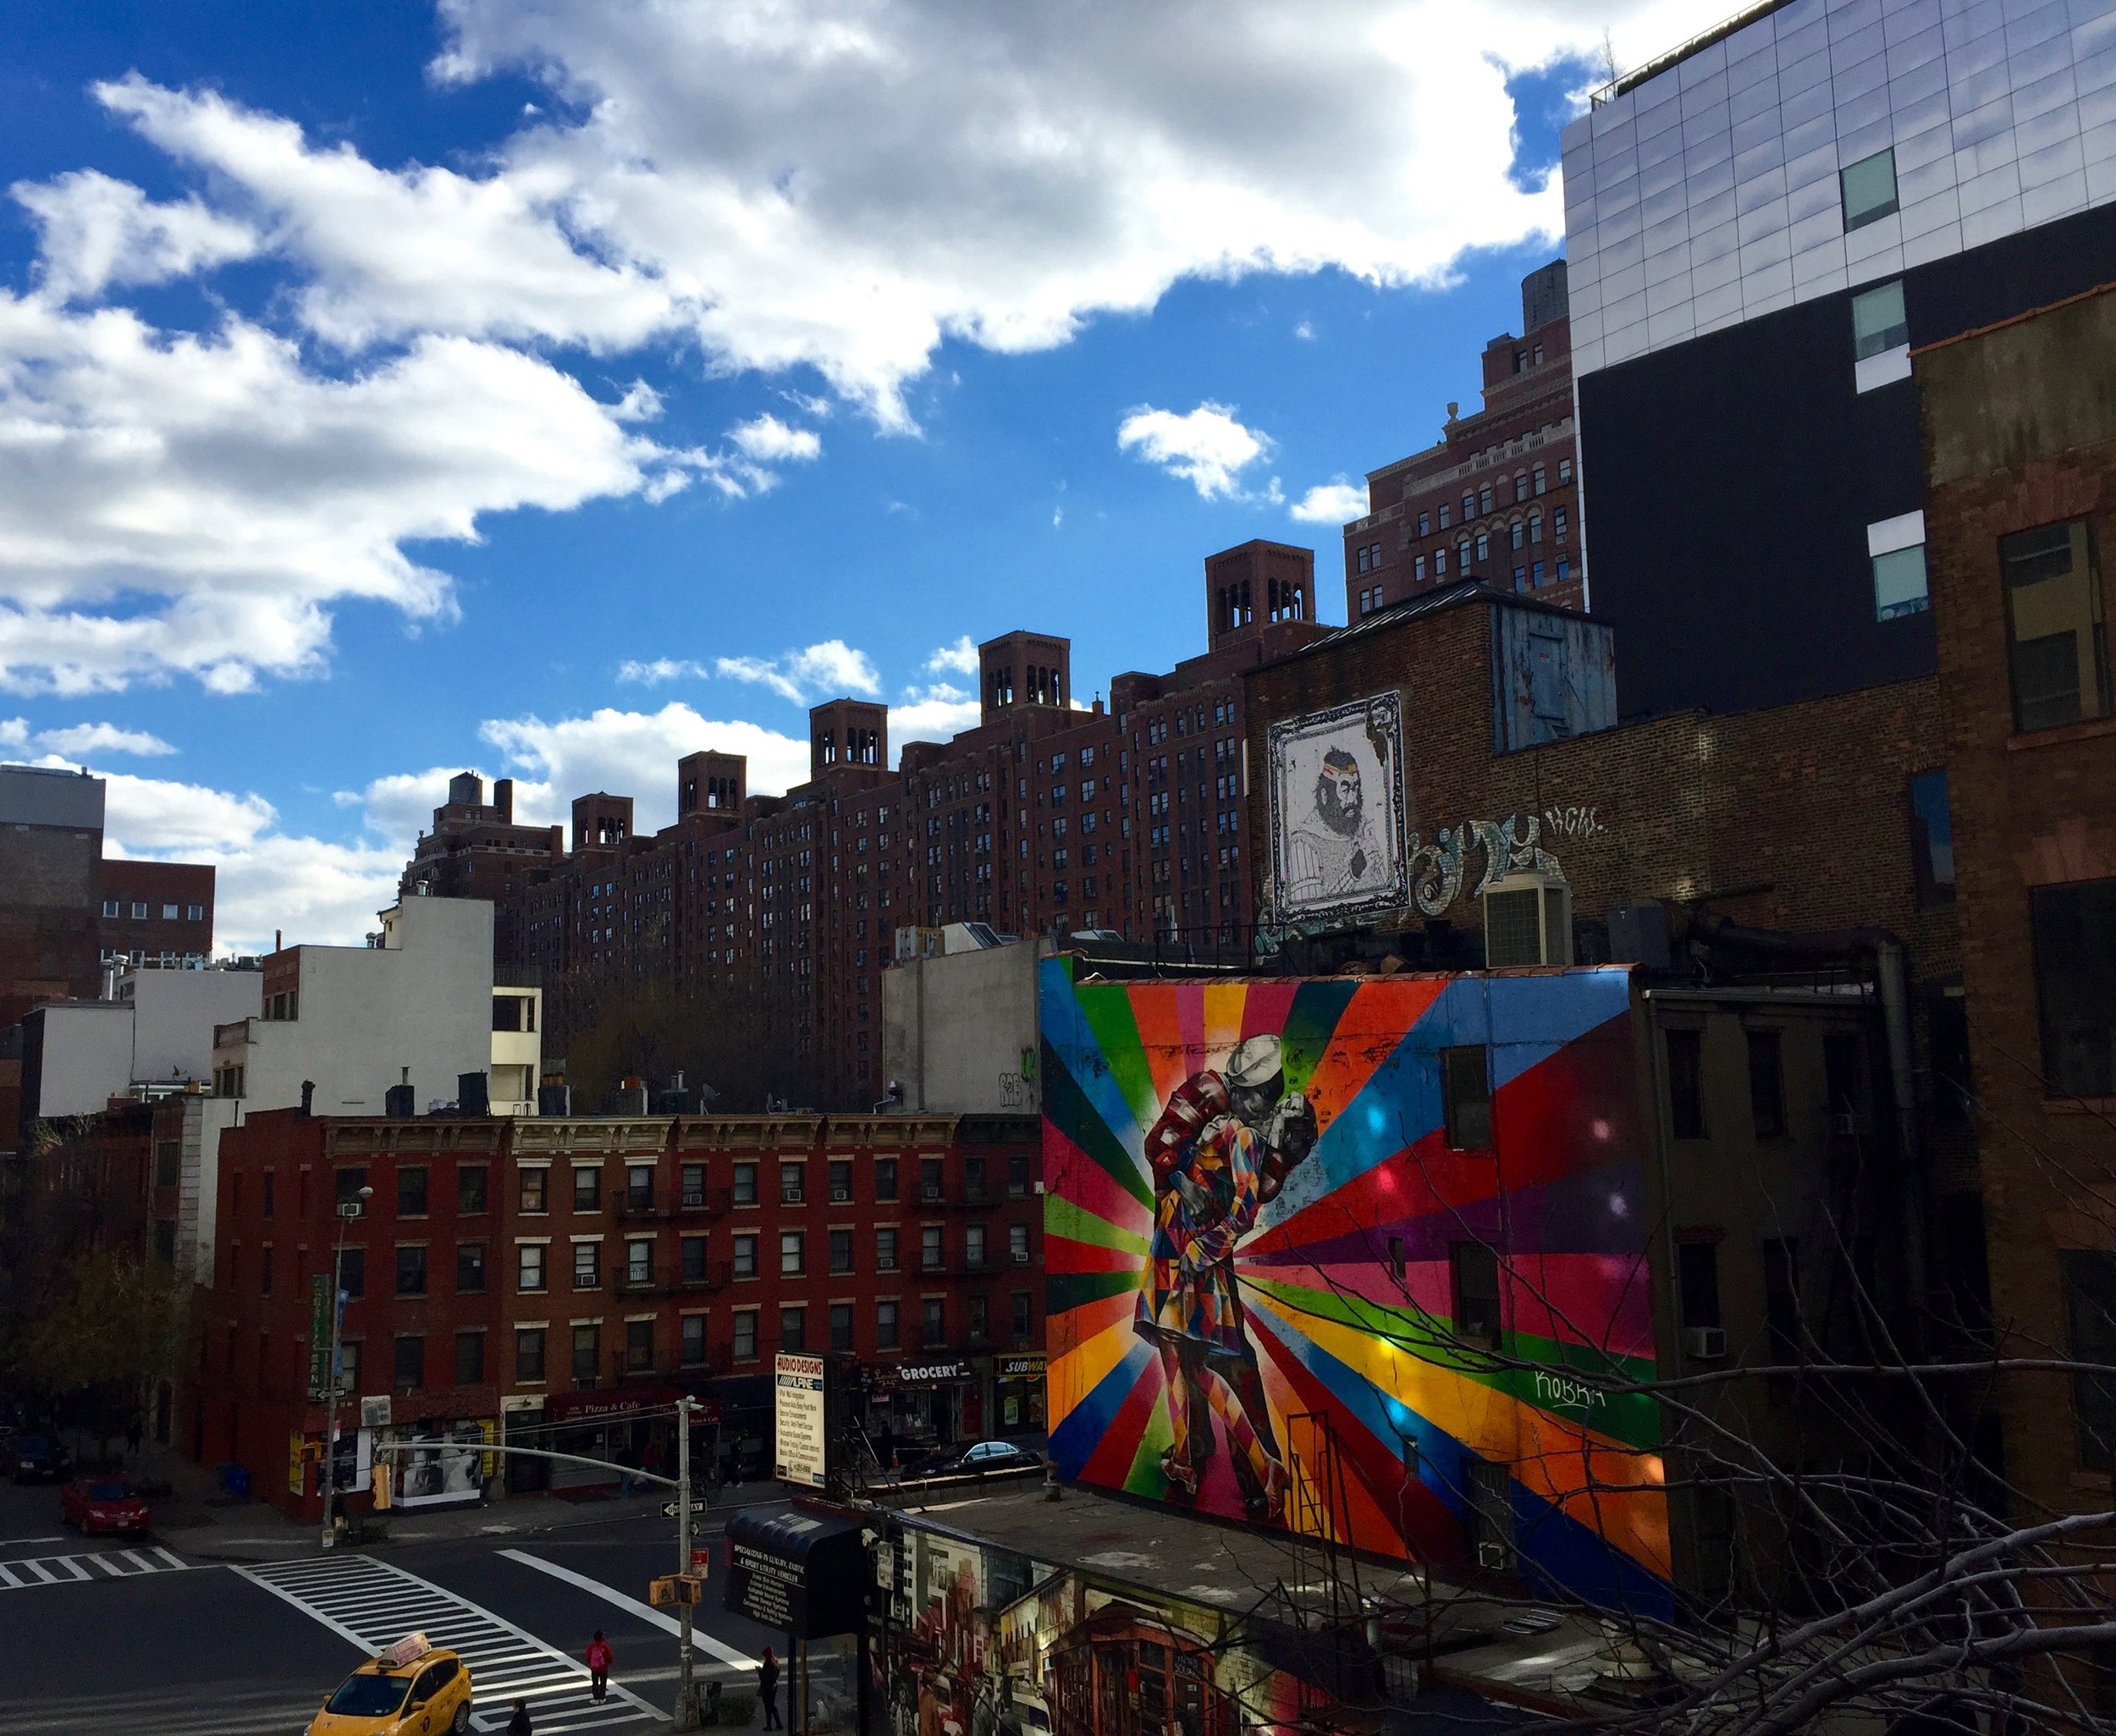 City views from the Highline